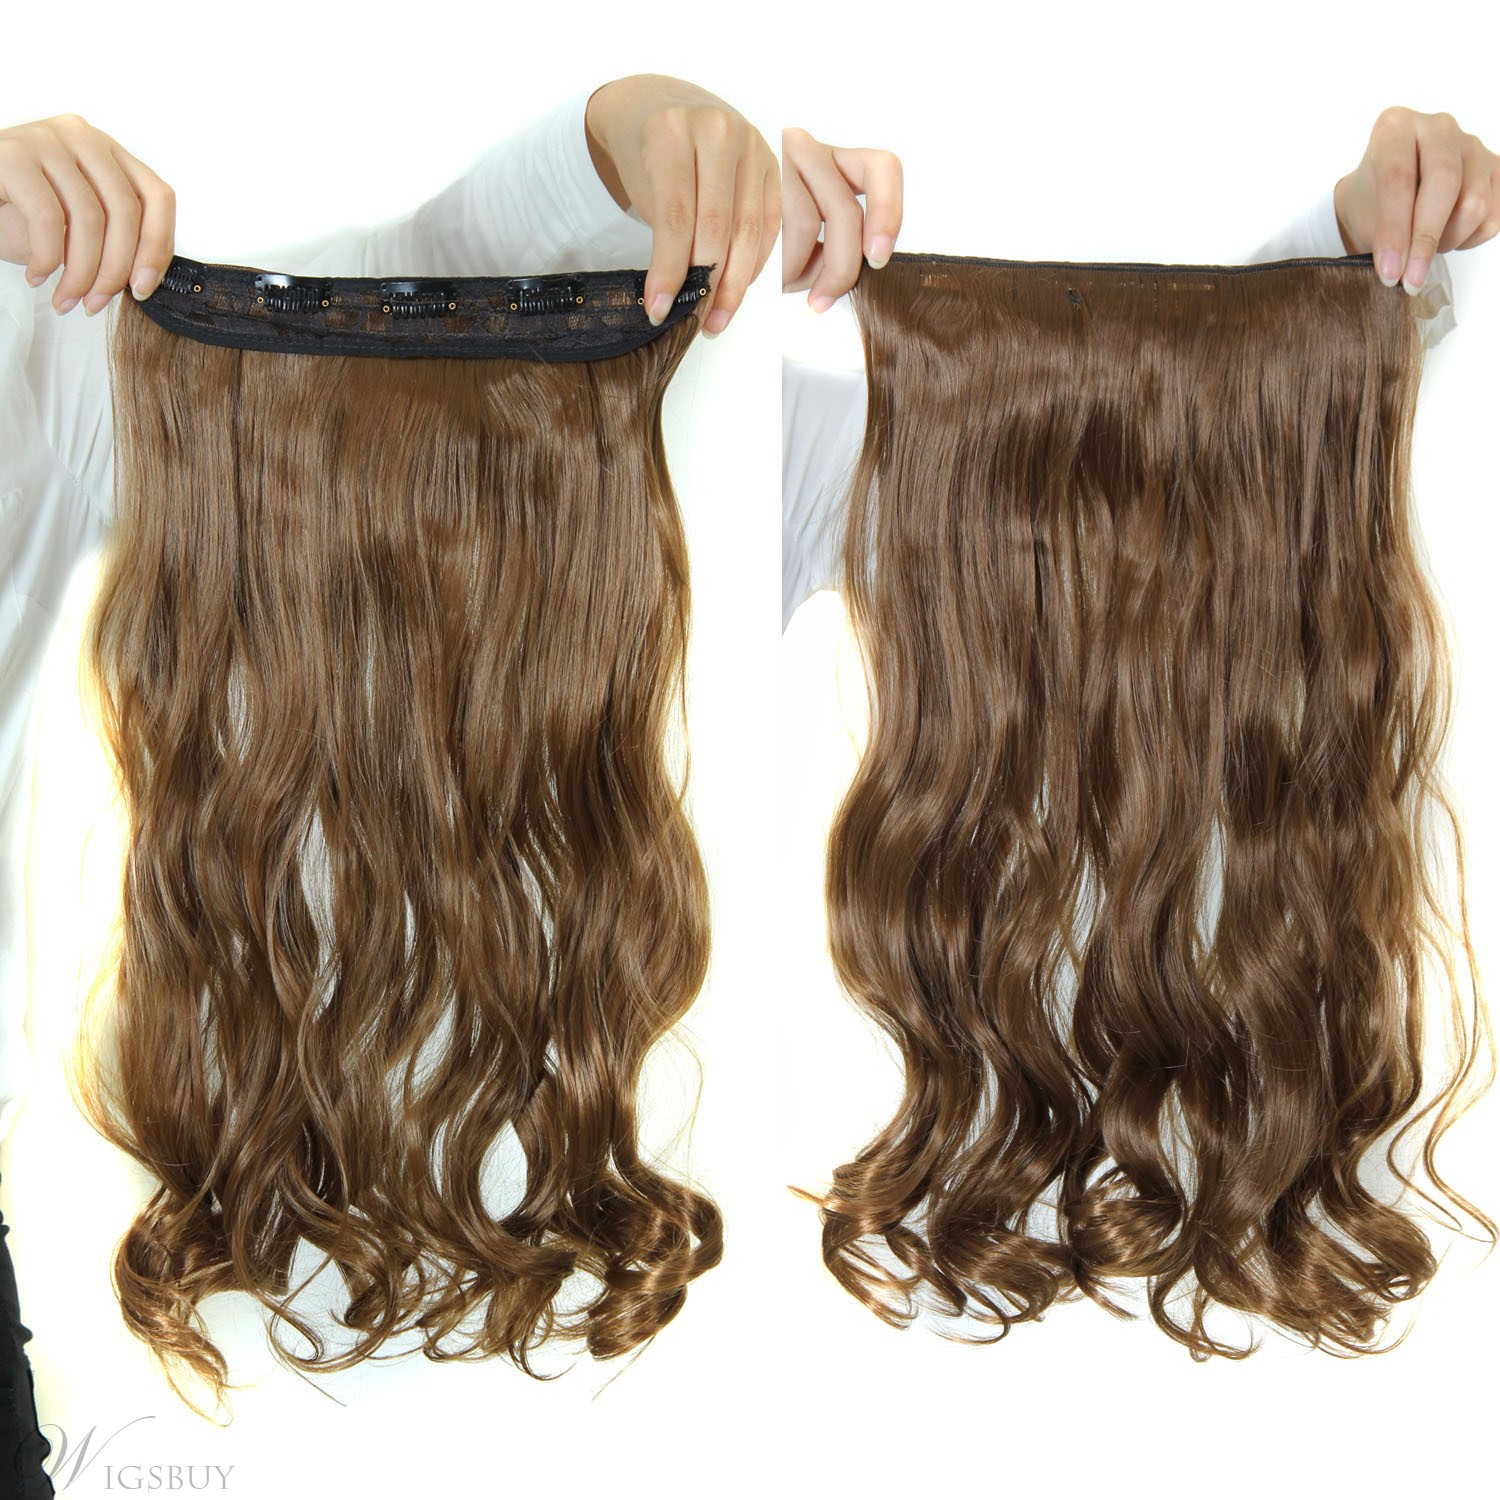 6 synthetic long wave one piece clip in hair extension 24 inches 30 6 synthetic long wave one piece clip in hair extension 24 inches pmusecretfo Images